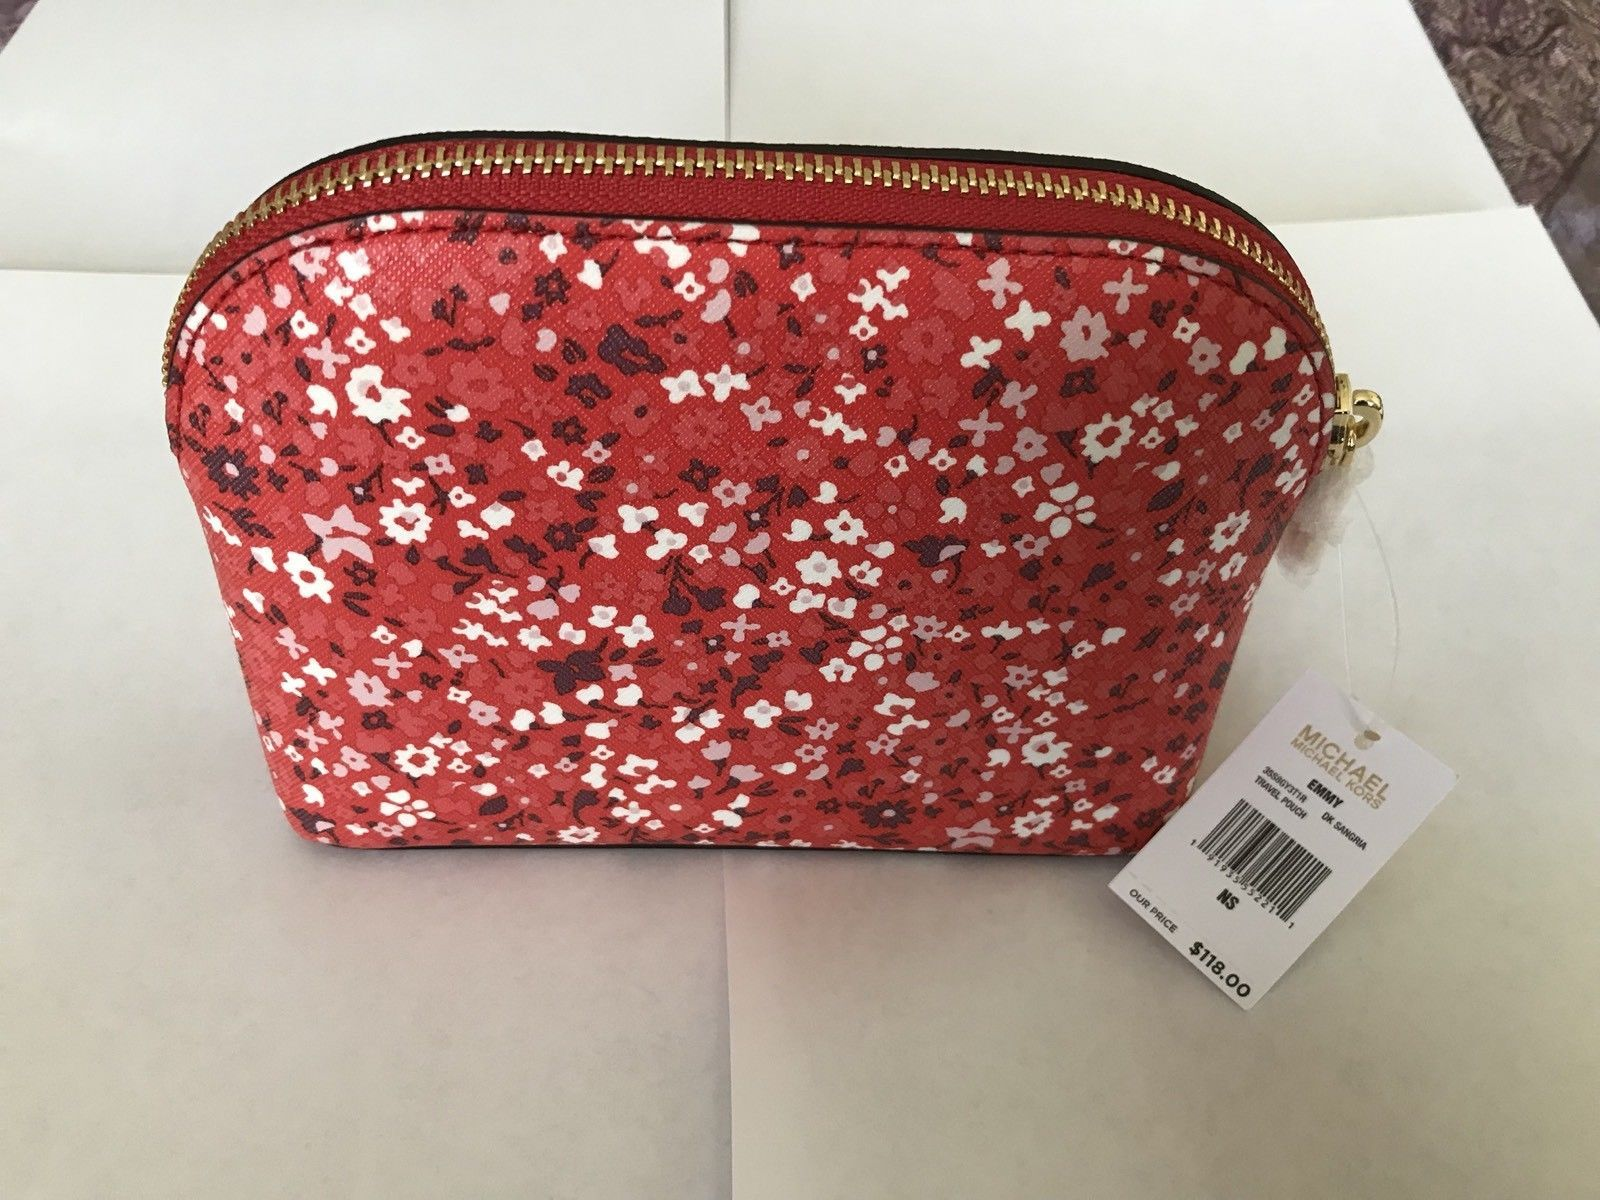 a1217b791e41 Michael Kors Emmy Dark Sangria Floral PVC Leather Travel Pouch Cosmetic Case